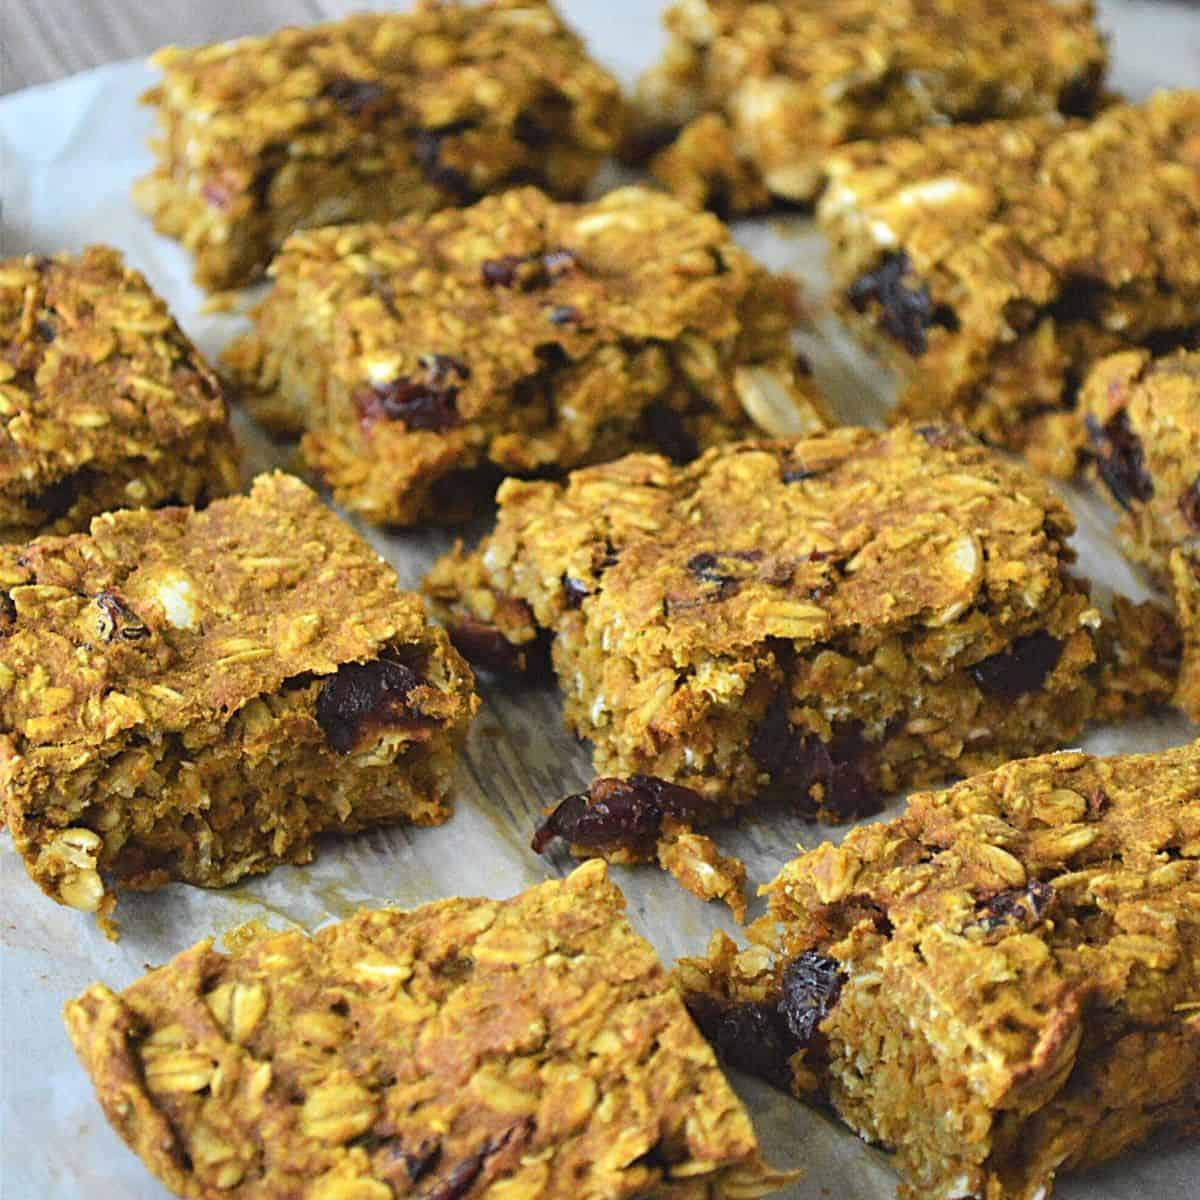 Breakfast oat bars sliced and ready to be eaten.